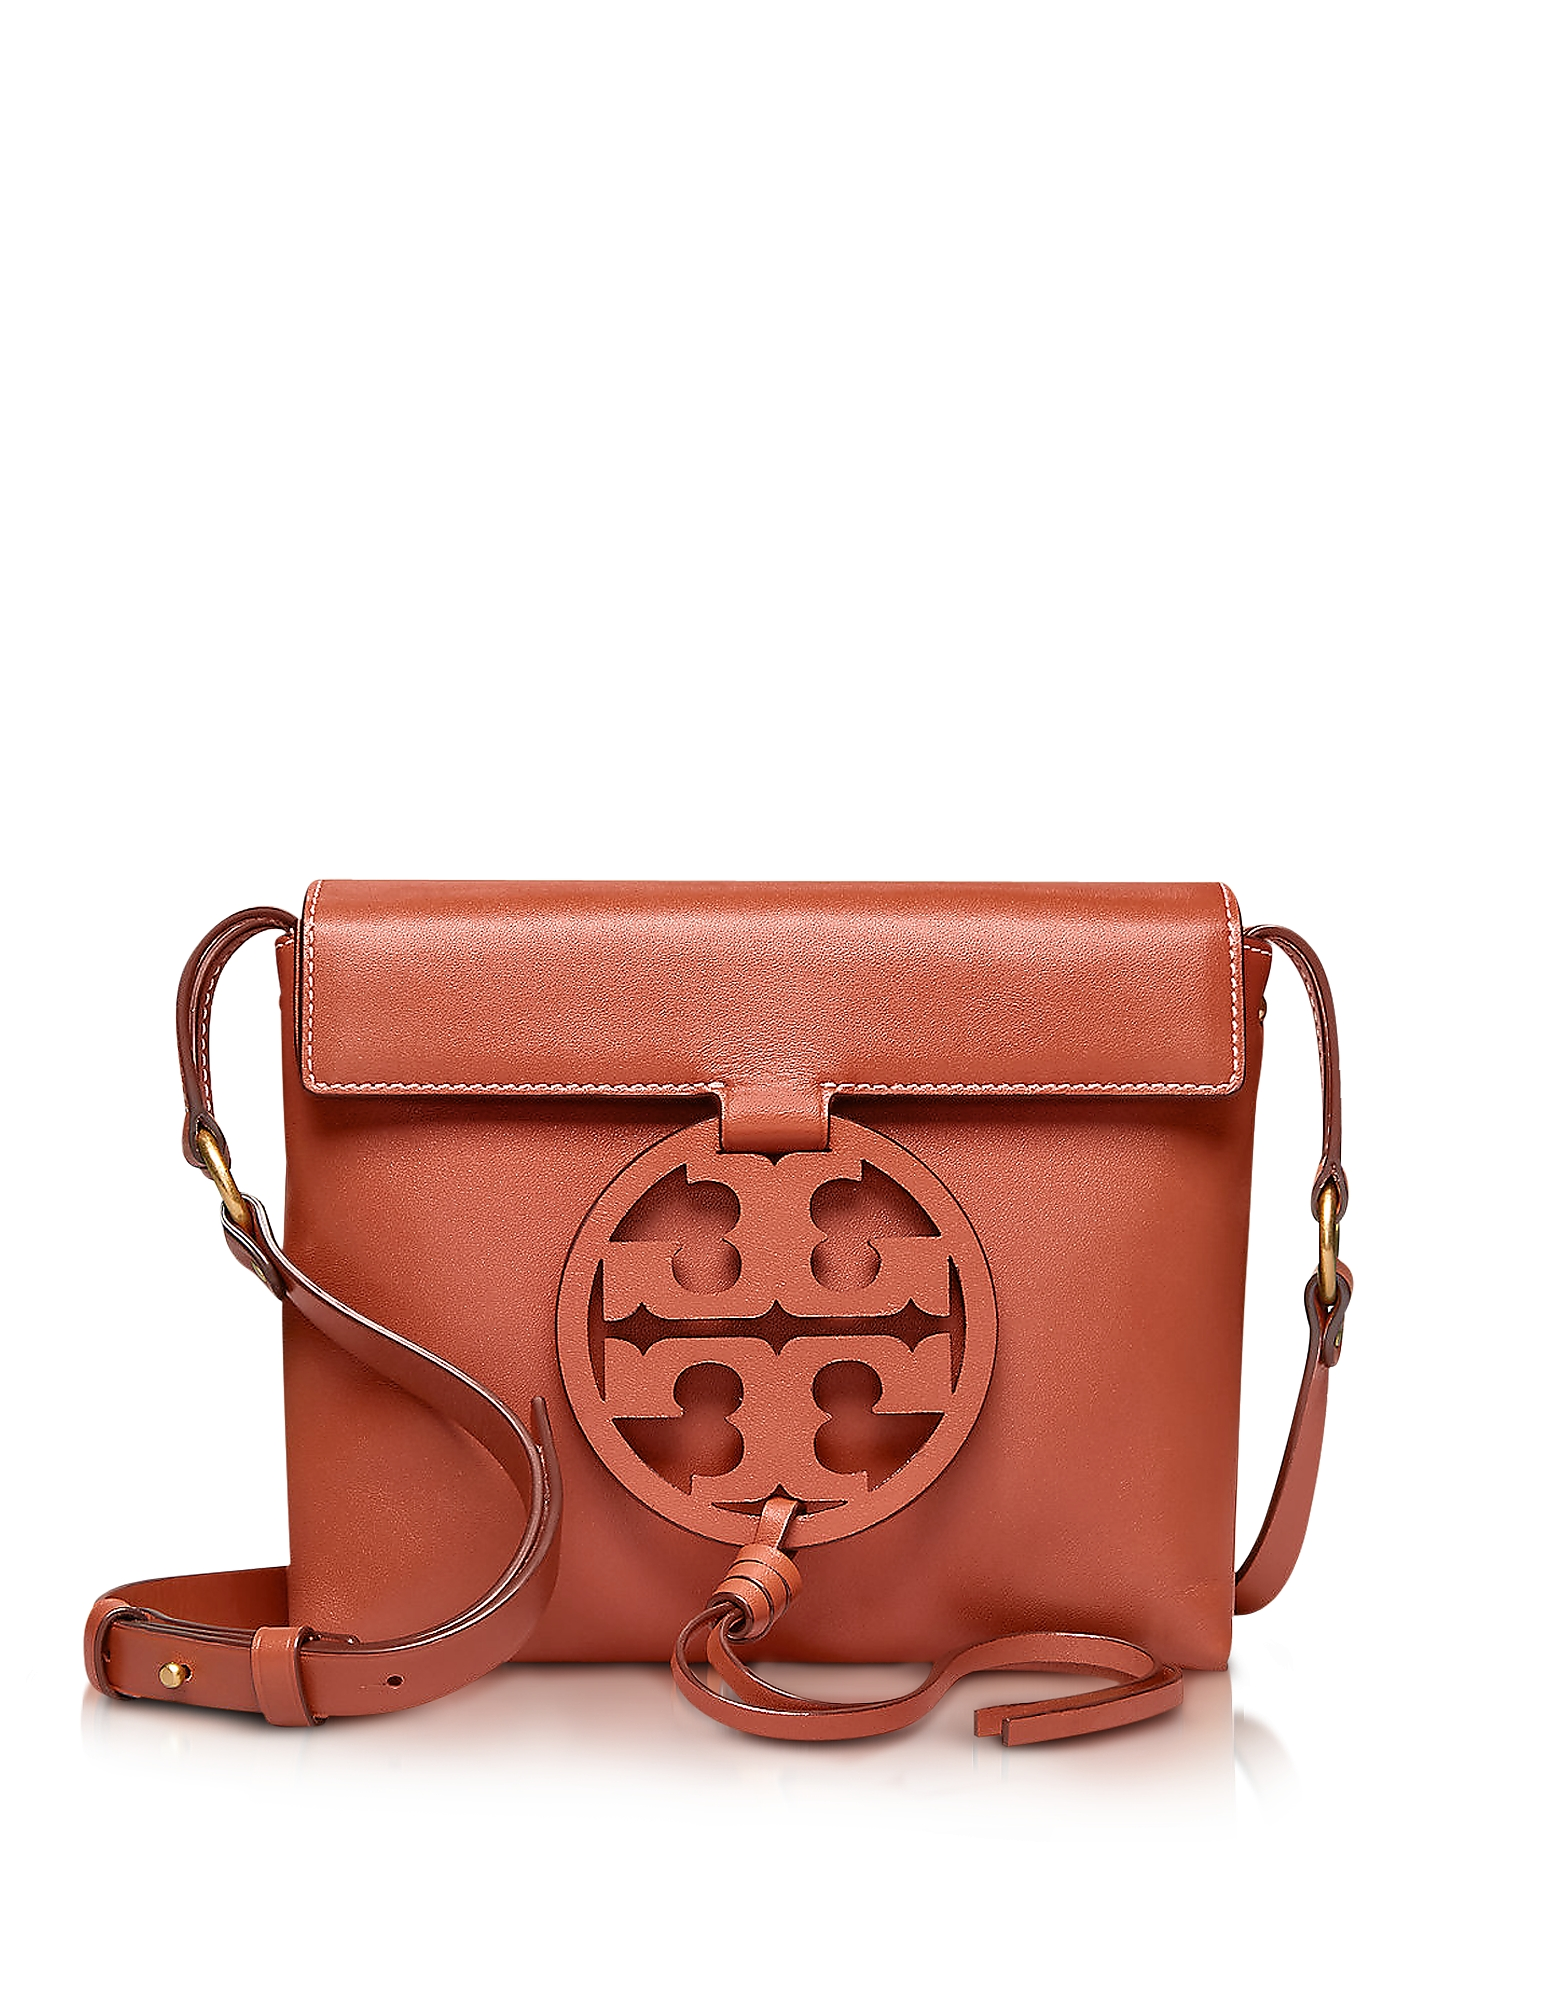 Tory Burch Handbags, Genuine Leather Miller Cross-Body Bag